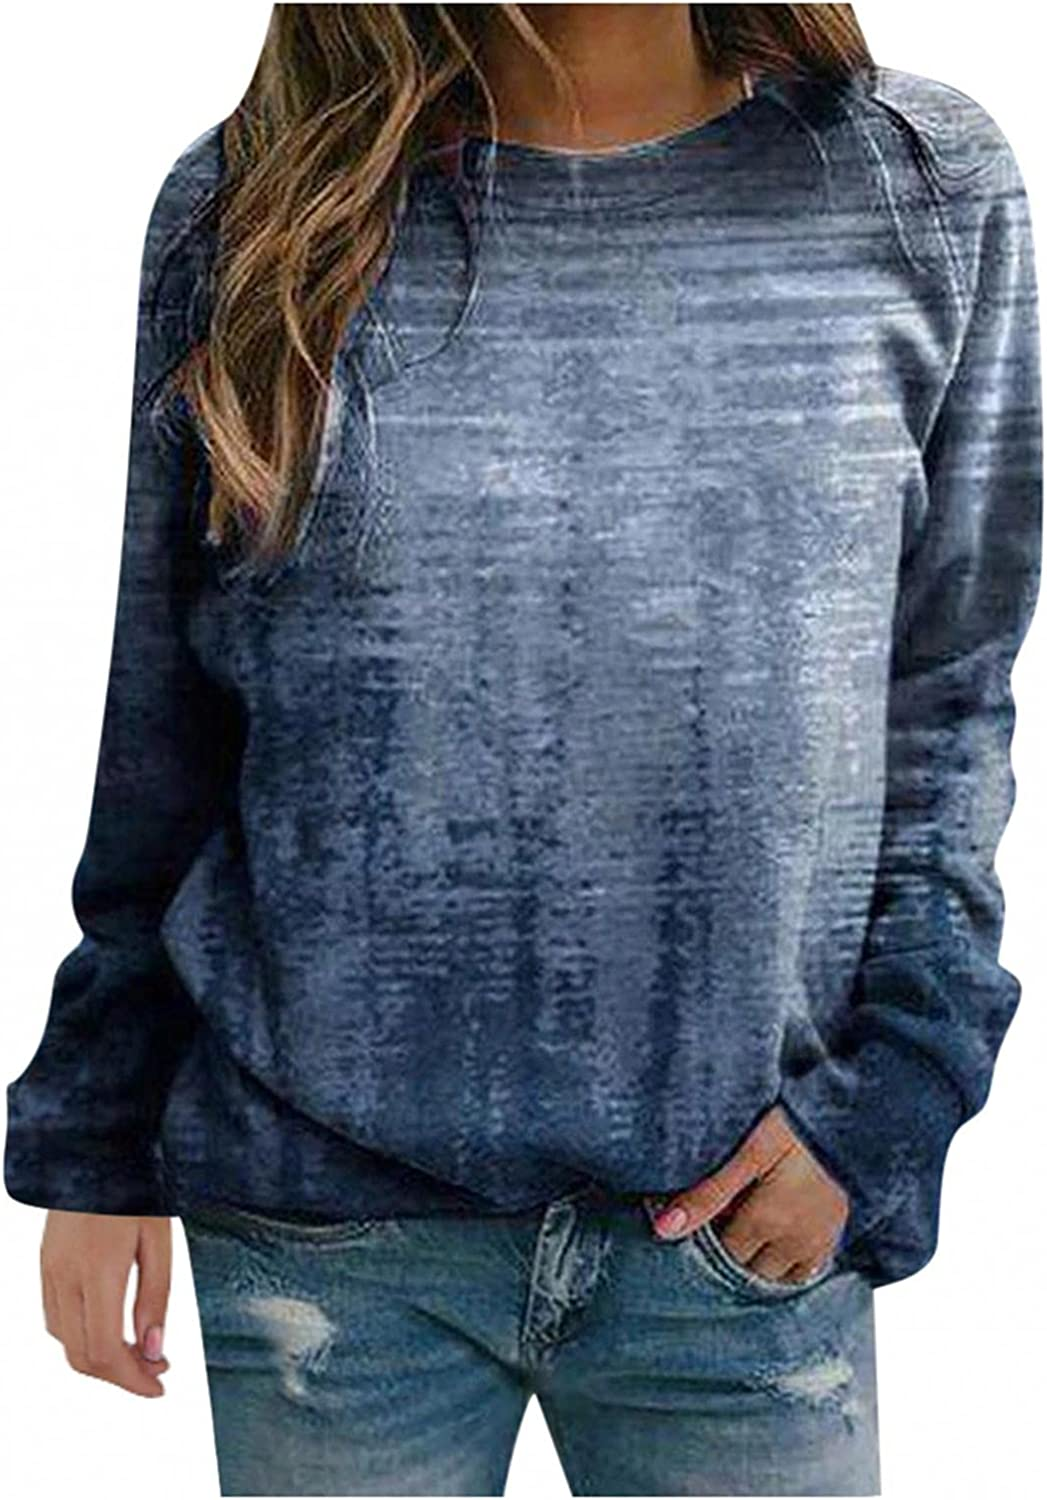 Sweatshirts for Women,Vintage Graphic Loose Casual Long Sleeve Shirts Crewneck Sweaters Tops